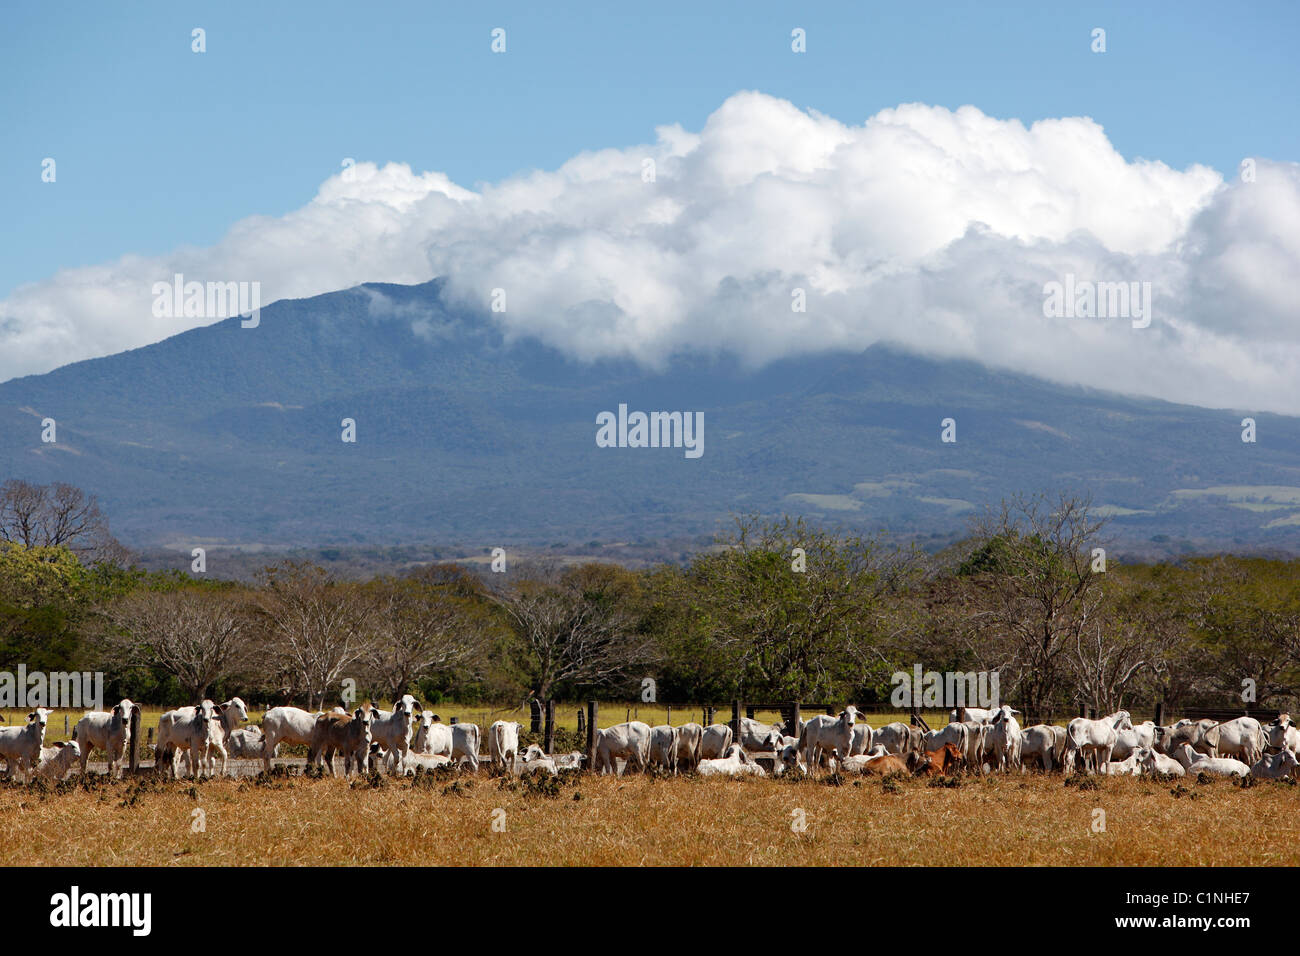 Cattle and ranch land backed by Miravalles volcano, Costa Rica Stock Photo